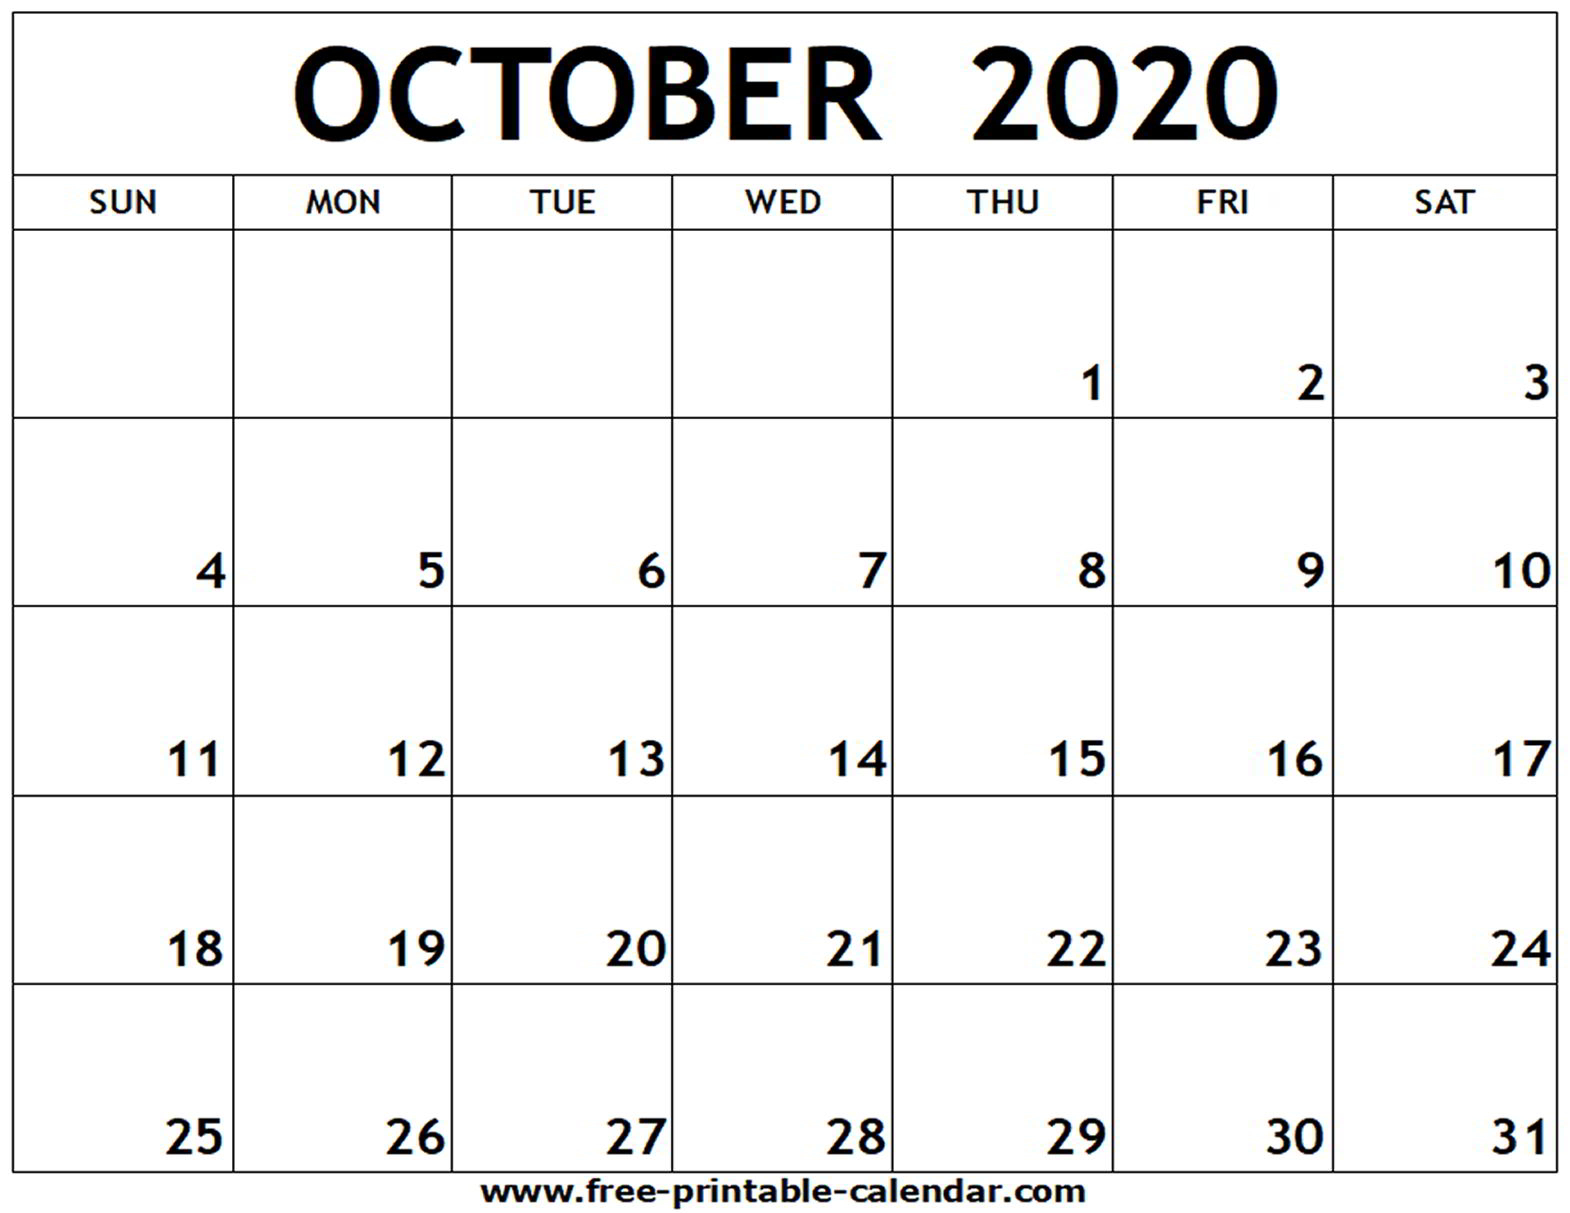 October 2020 Printable Calendar Pdf - Zohre.horizonconsulting.co